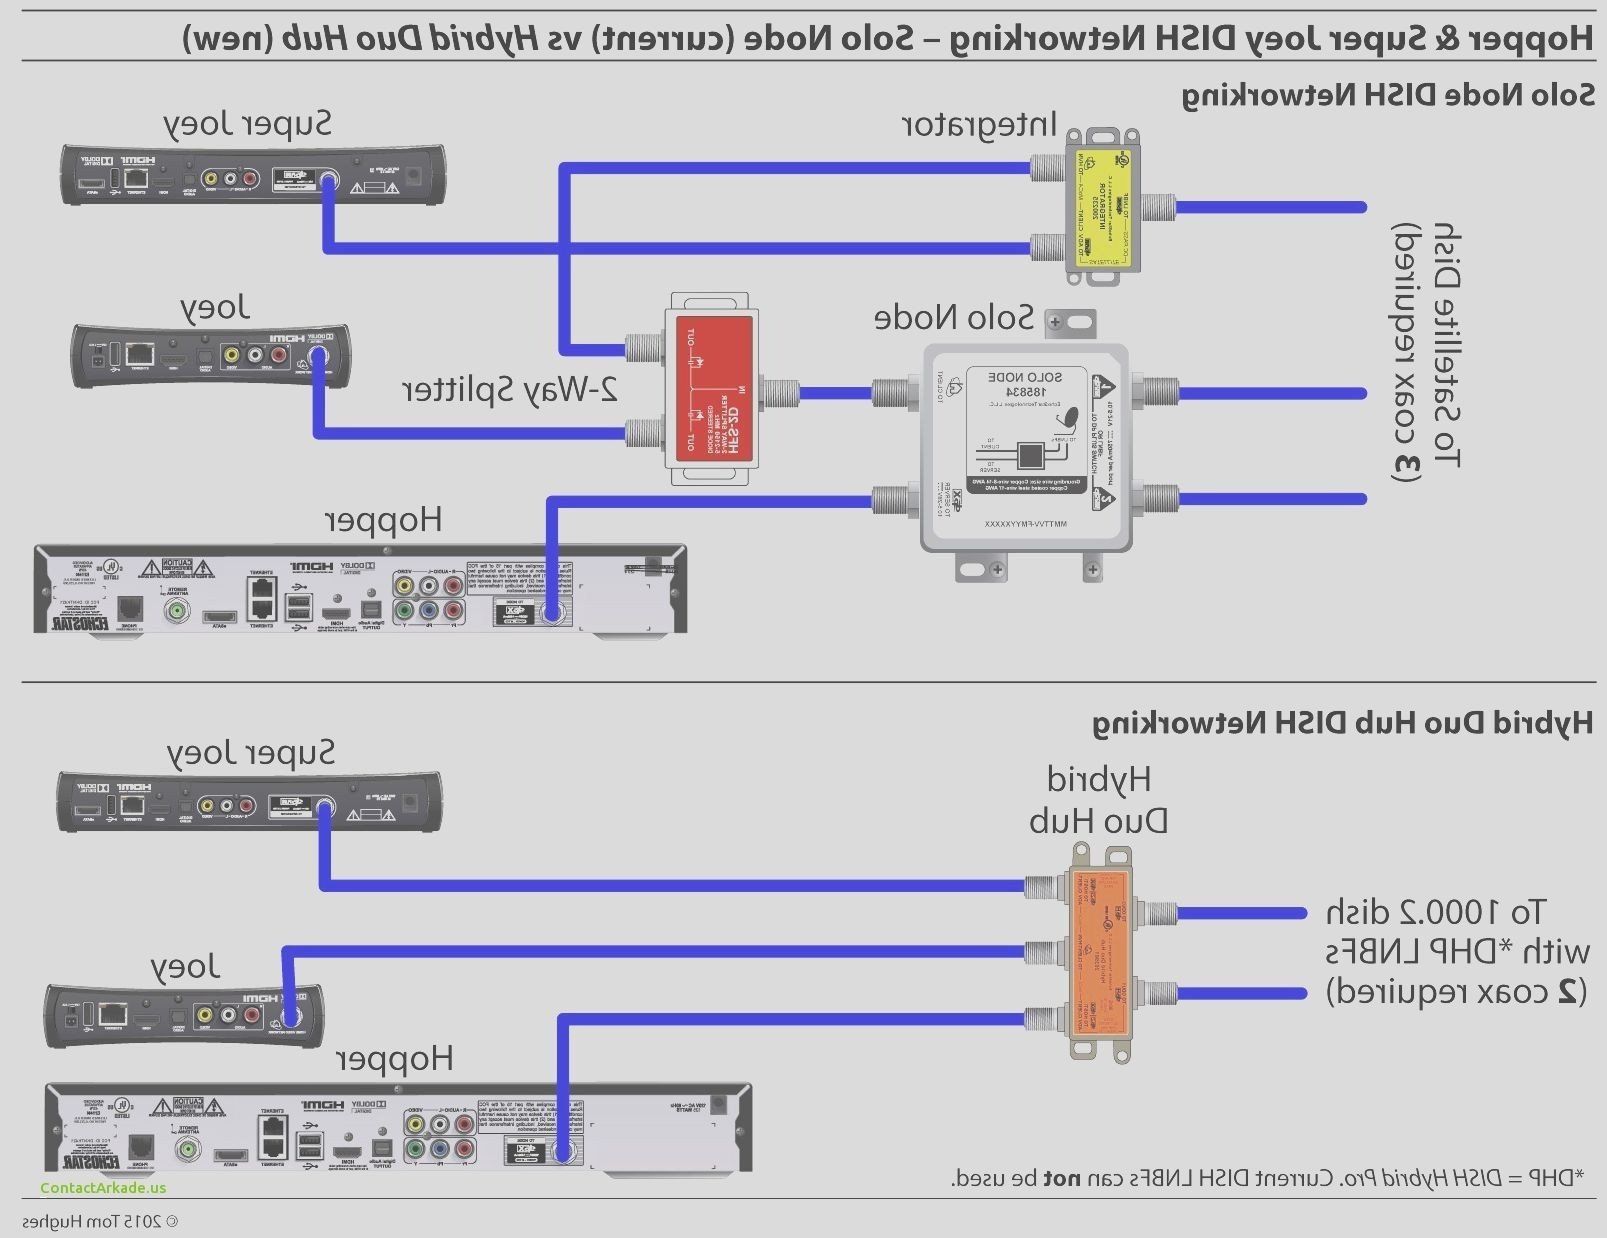 hight resolution of wiring diagram for cat5 cable download wiring diagram for a cat5 cable new cat5e wire